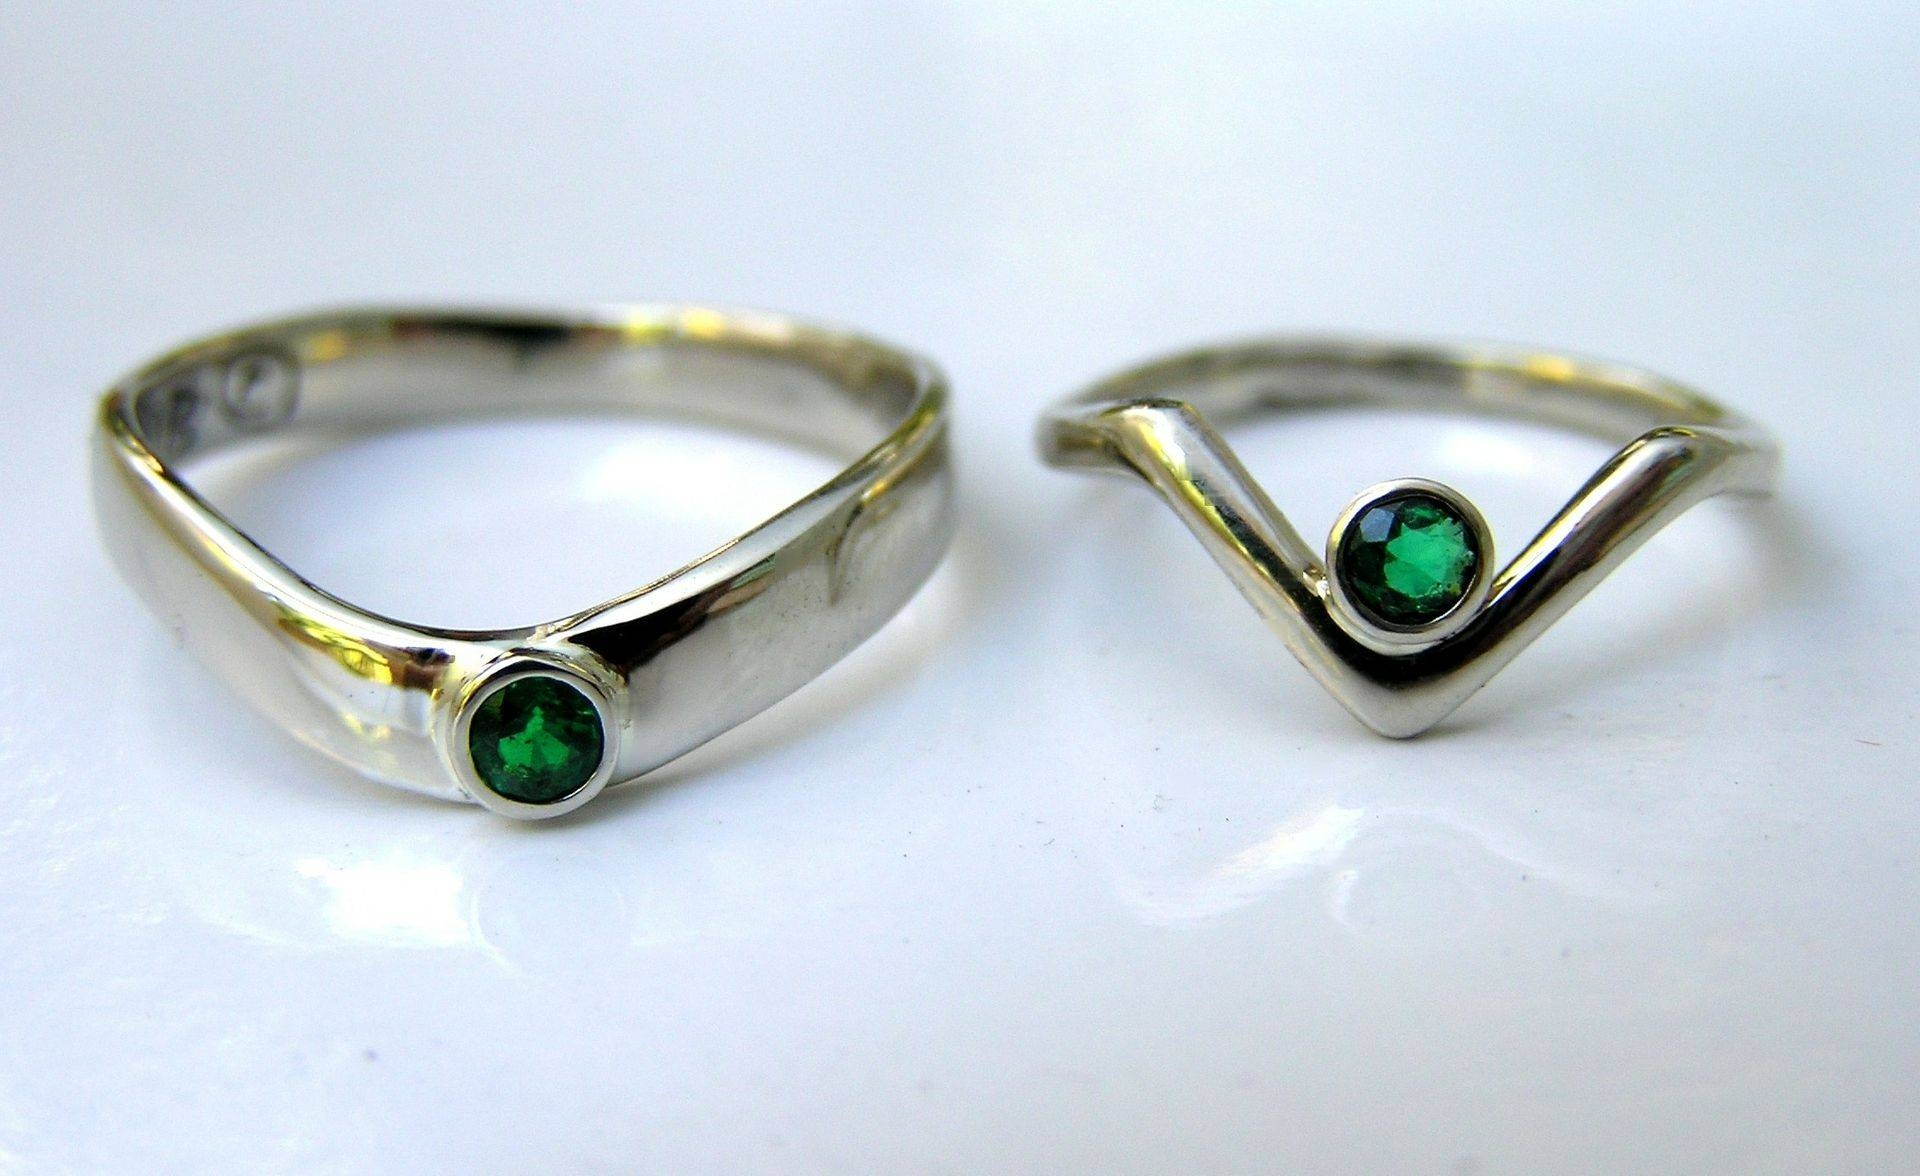 Hand Crafted His Hers Emerald Anniversary Rings – Handmade Custom Regarding Most Recent Emerald Anniversary Rings (View 13 of 25)